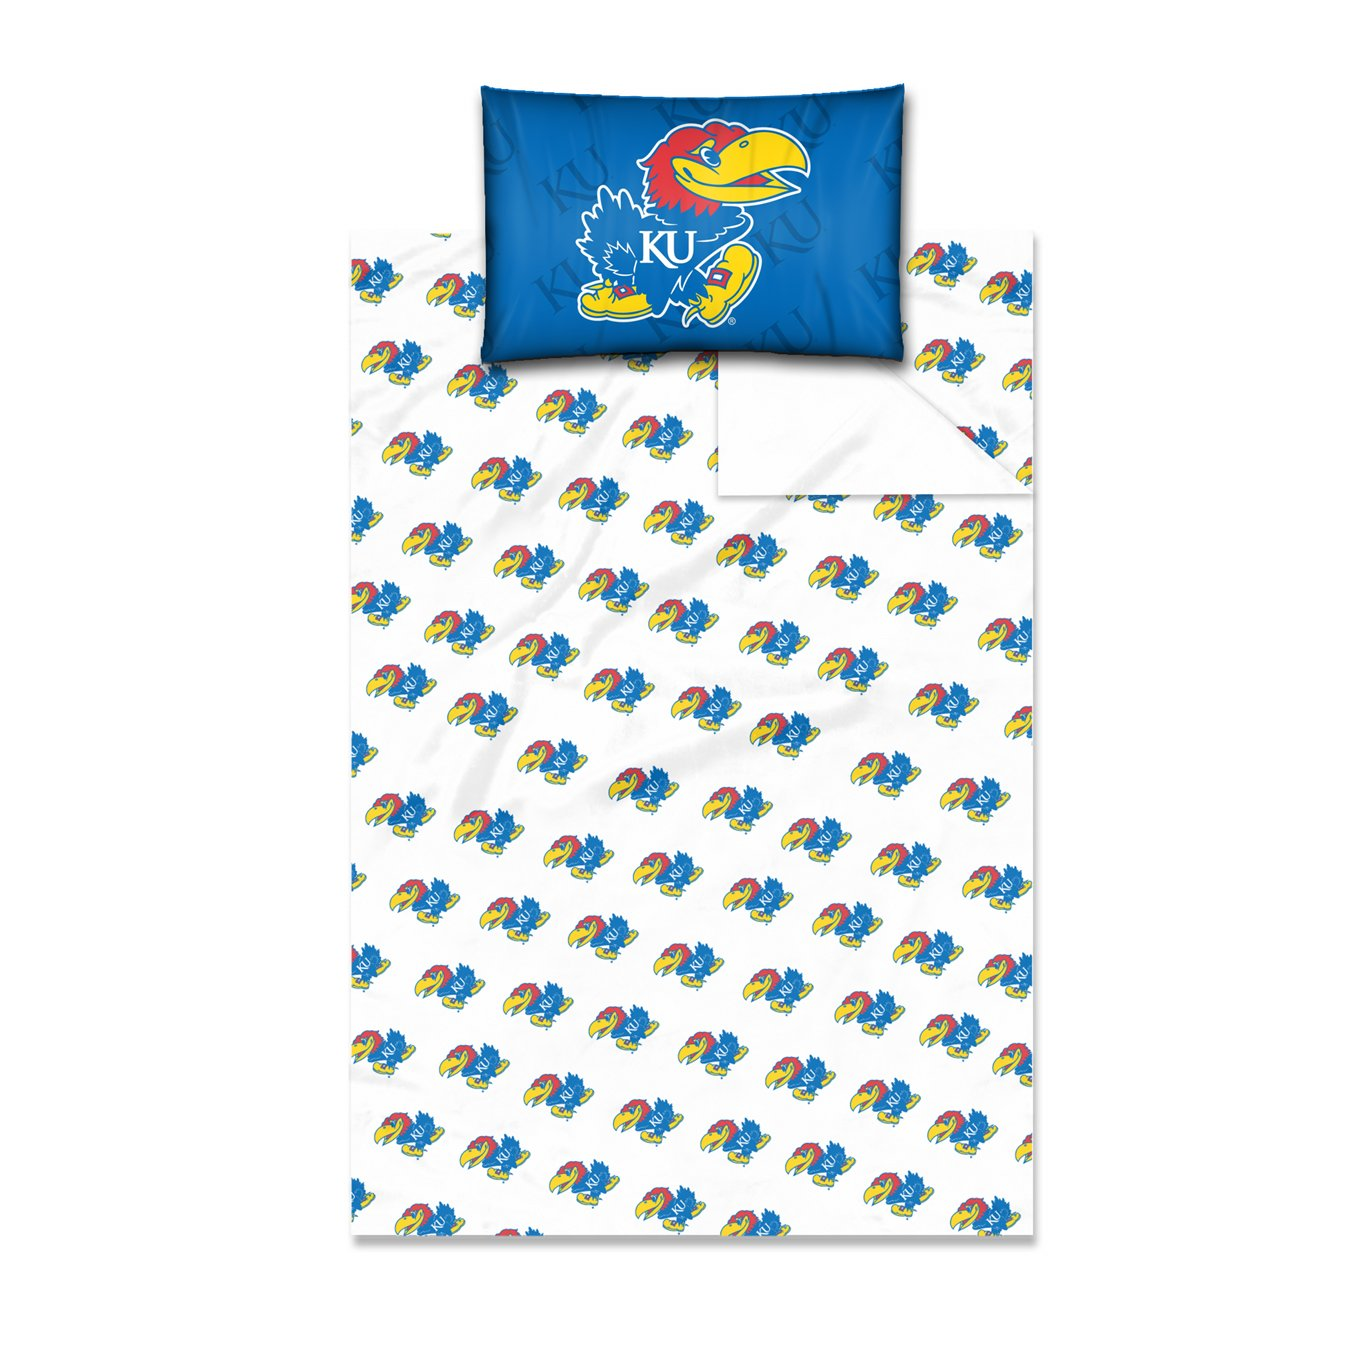 Kansas OFFICIAL Collegiate, Bedding Twin Sheet Set (1 Flat 66 x 96, 1 Fitted 39 x 75 + 12 pocket, and 1 Pillowcase 20 x 30)